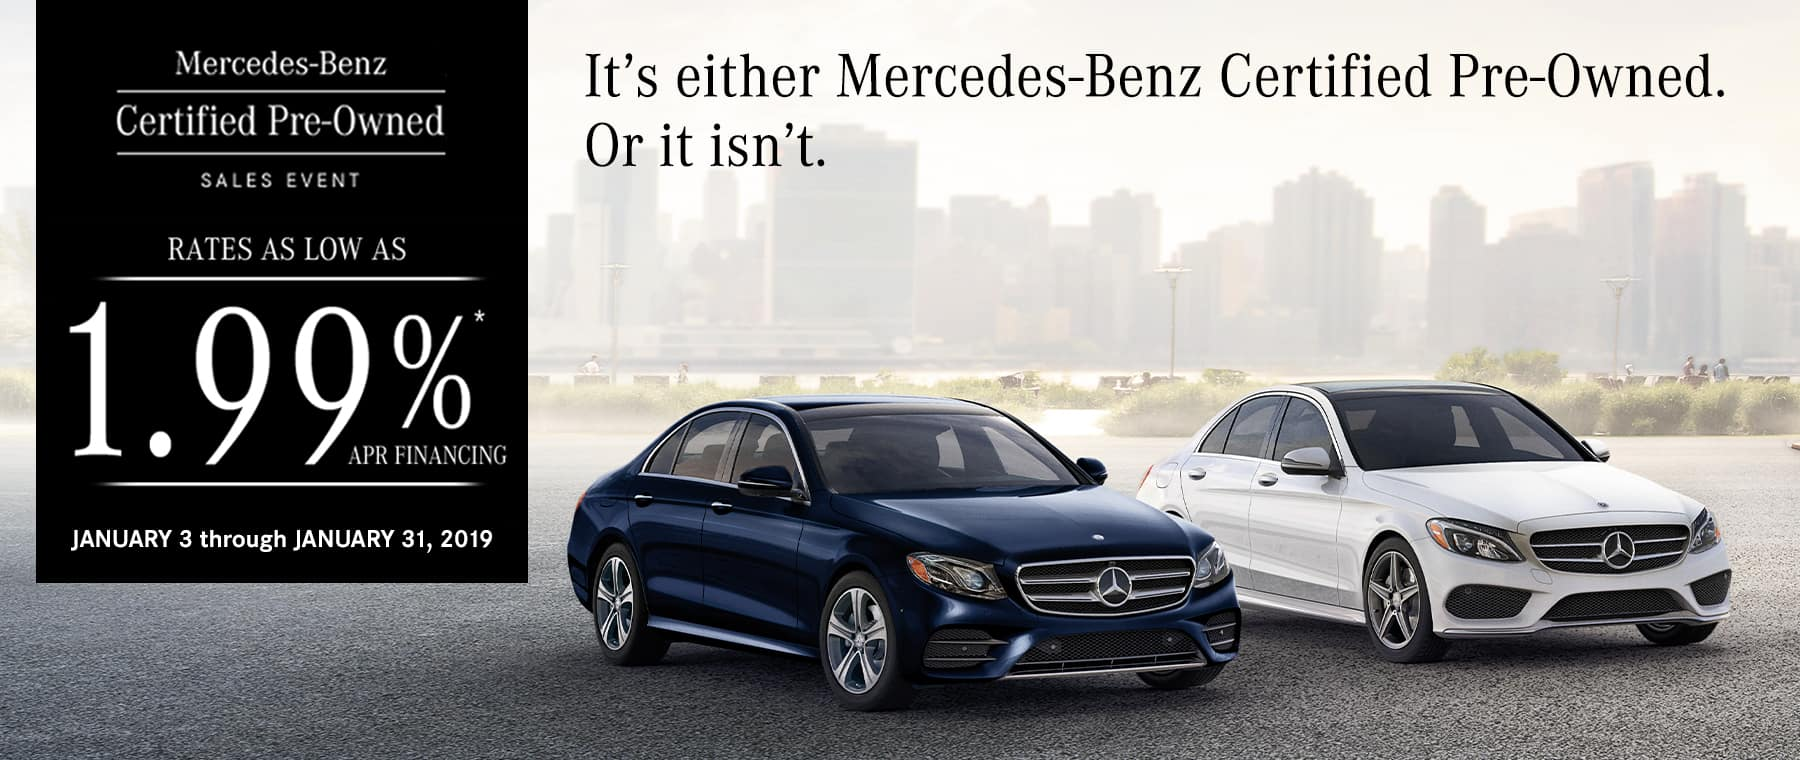 Mercedes Benz Of White Plains Luxury Auto Dealer And Service